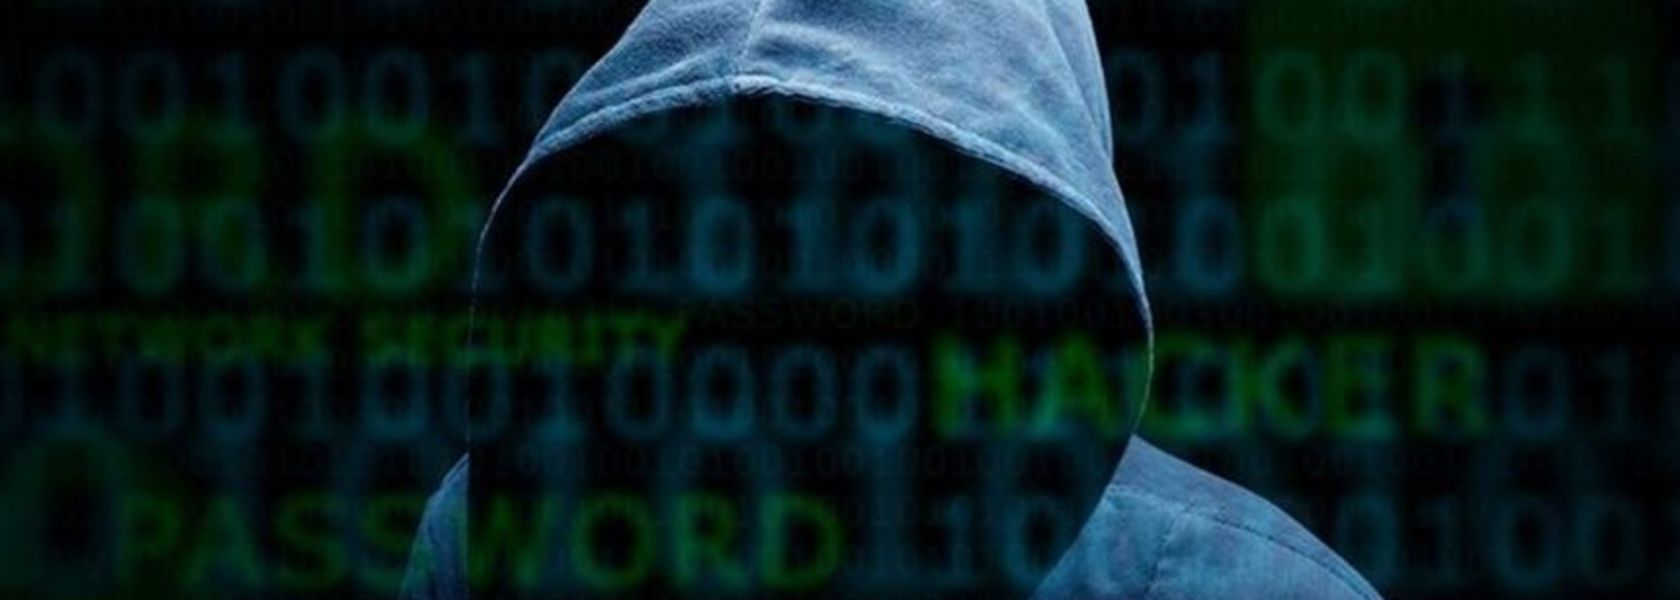 Cyber risk ramps up